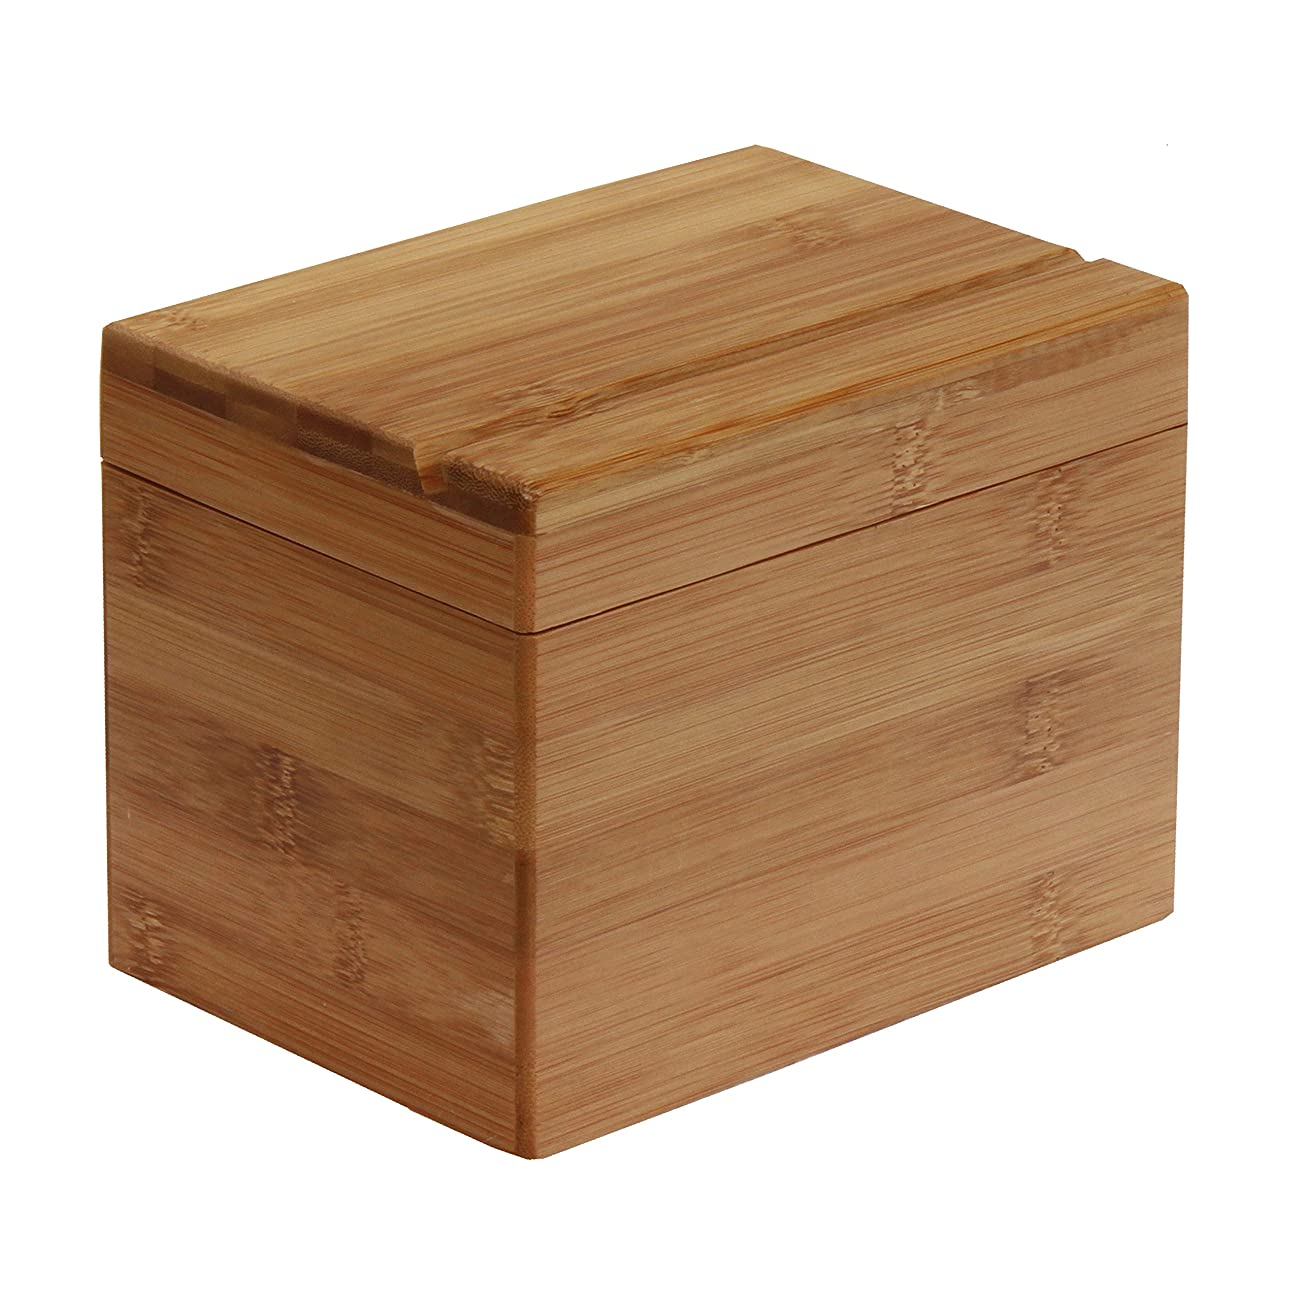 Oceanstar Bamboo Recipe Box with Divider, Natural 1